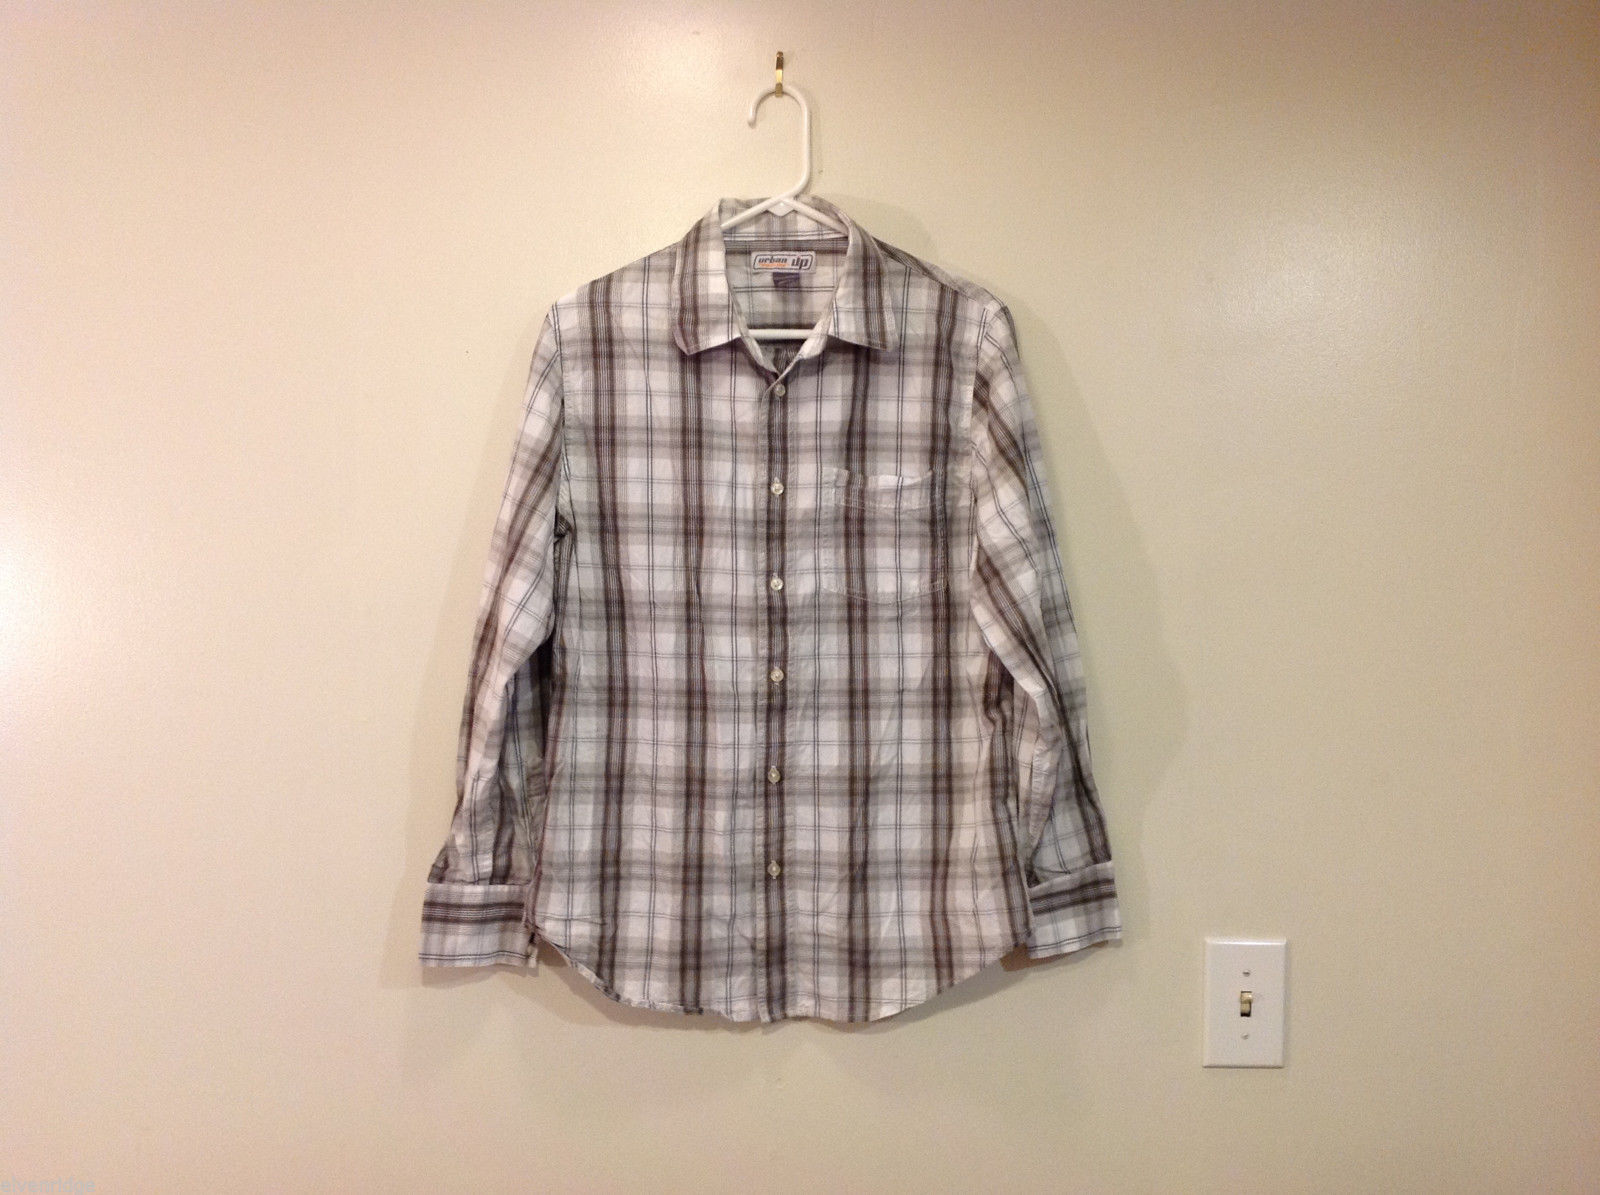 Urban Up Pipeline Plaid Long Sleeve Shirt, Size M, 100% cotton